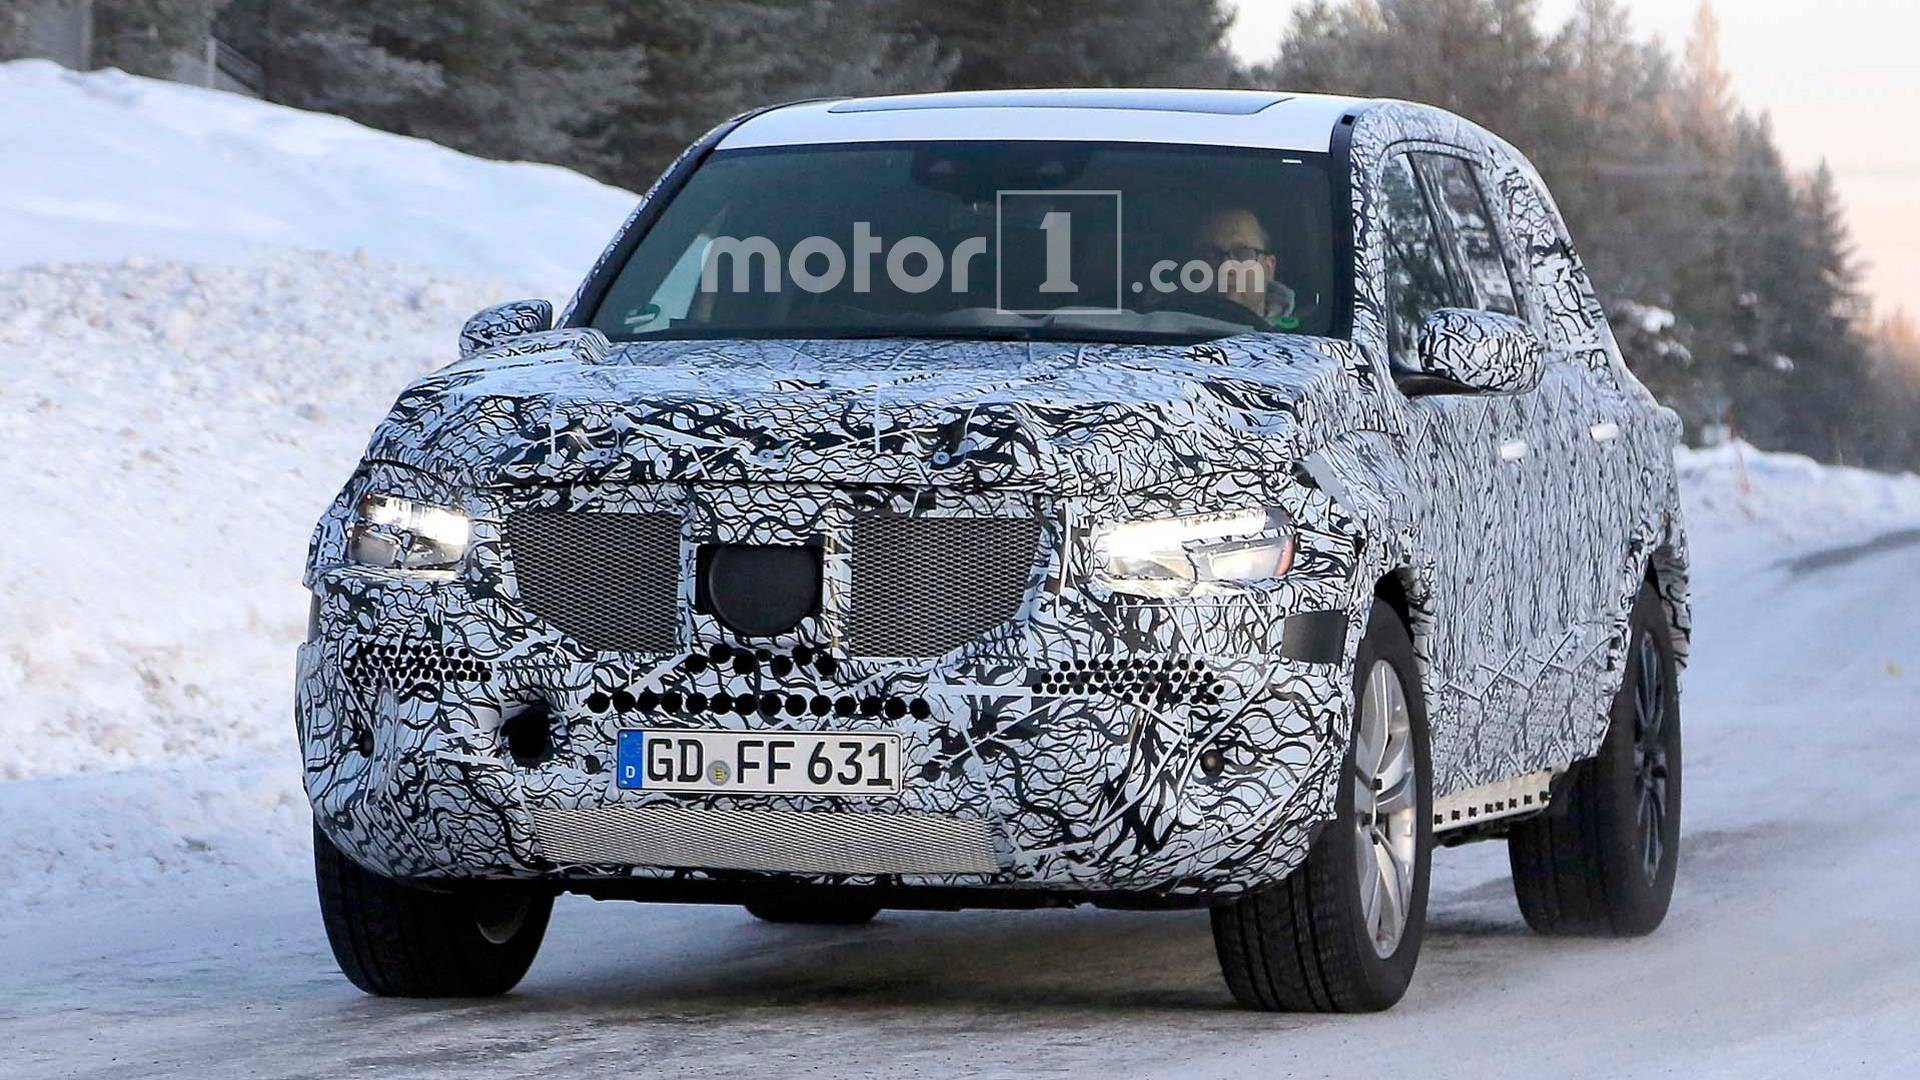 mercedes-maybach gls concept to be unveiled next month?